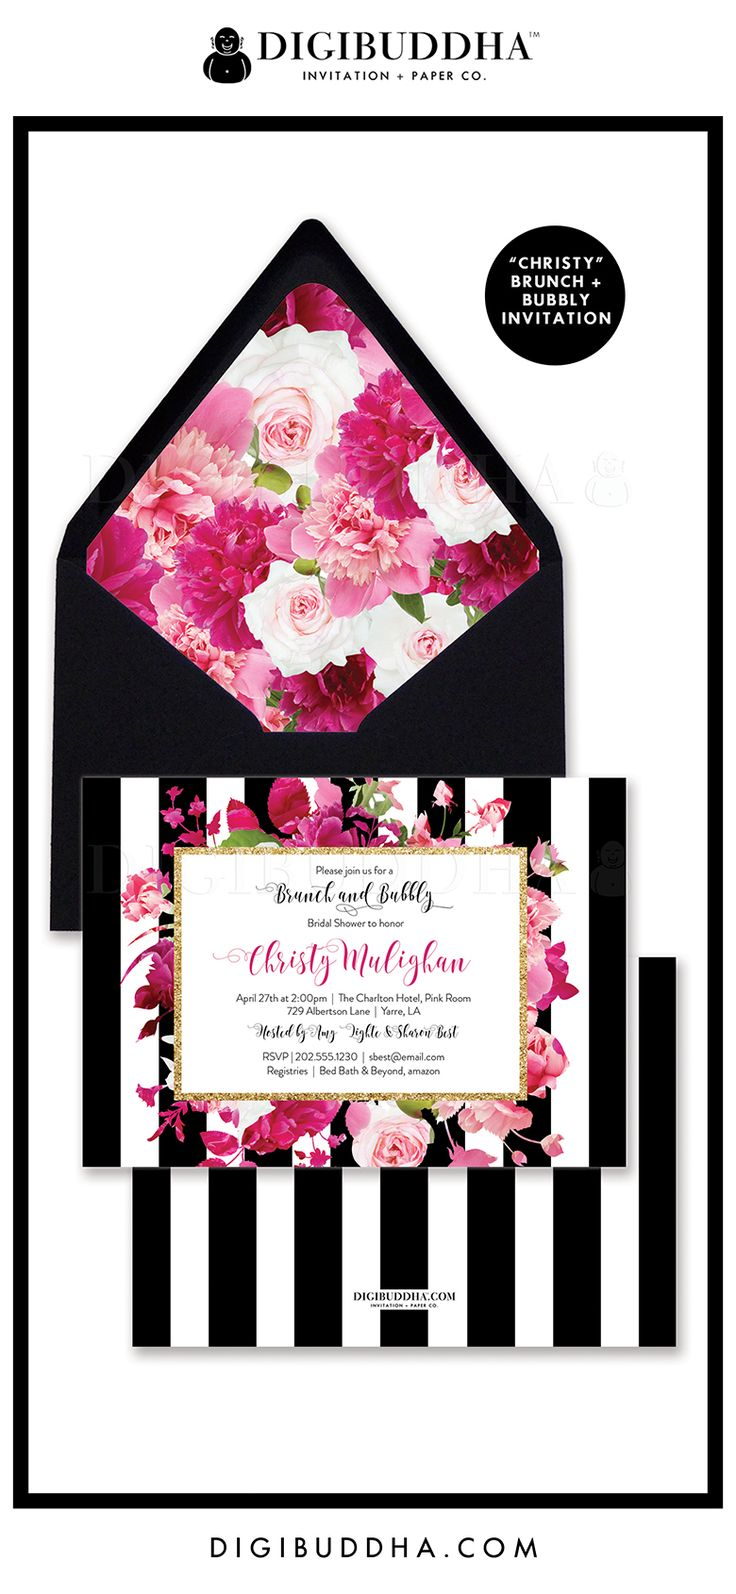 """Brunch & Bubbly Bridal Shower Invitation, """"Christy"""" style with a gorgeous classic black and white stripe pattern overlaid with florals in lush shades of pink. Modern calligraphy, black envelope & floral envelope liner also available, at digibuddha.com"""